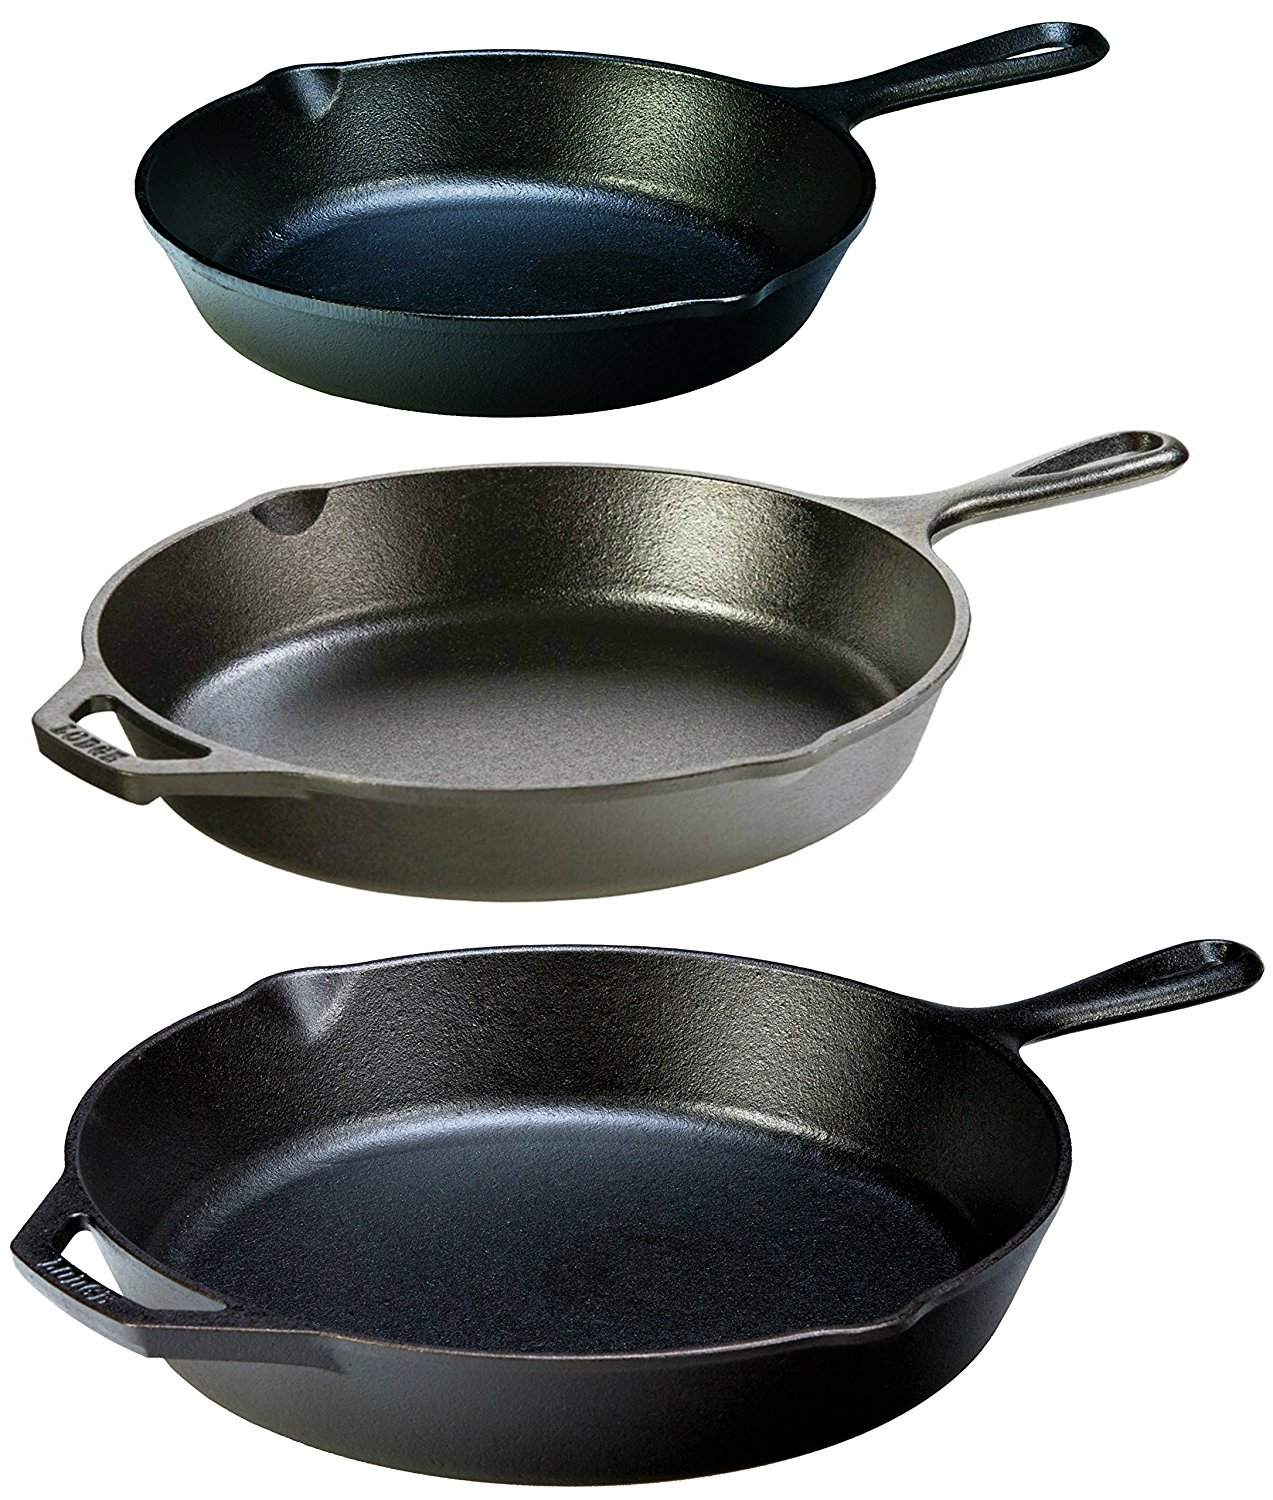 Cast iron pans